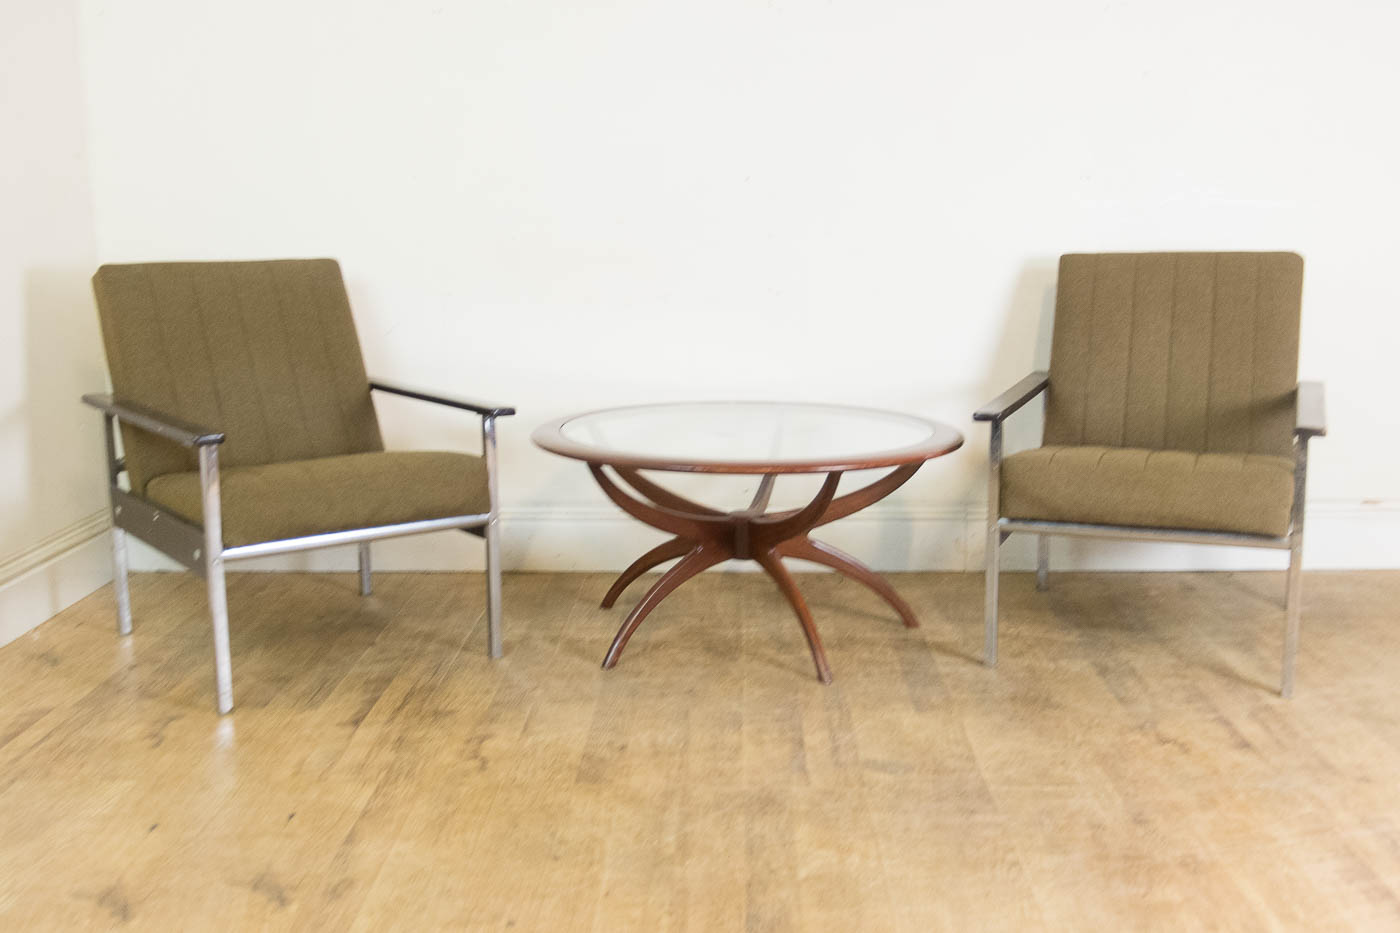 retro chrome chairs design chair online shop pair of vintage teak and office lounge